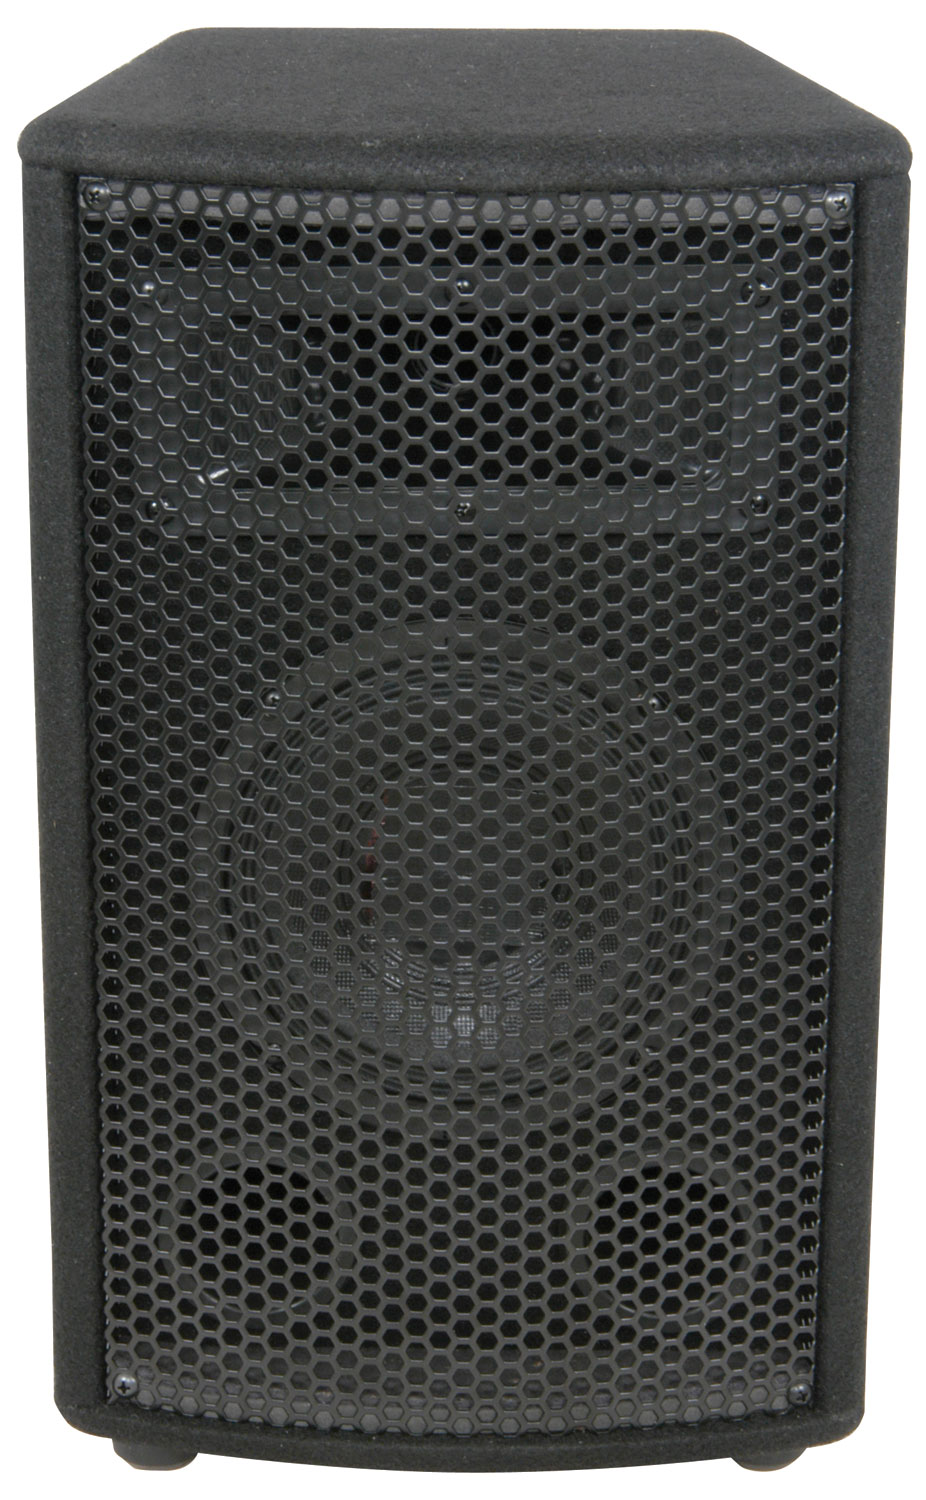 QT8 PA Speaker Box 8in 150W